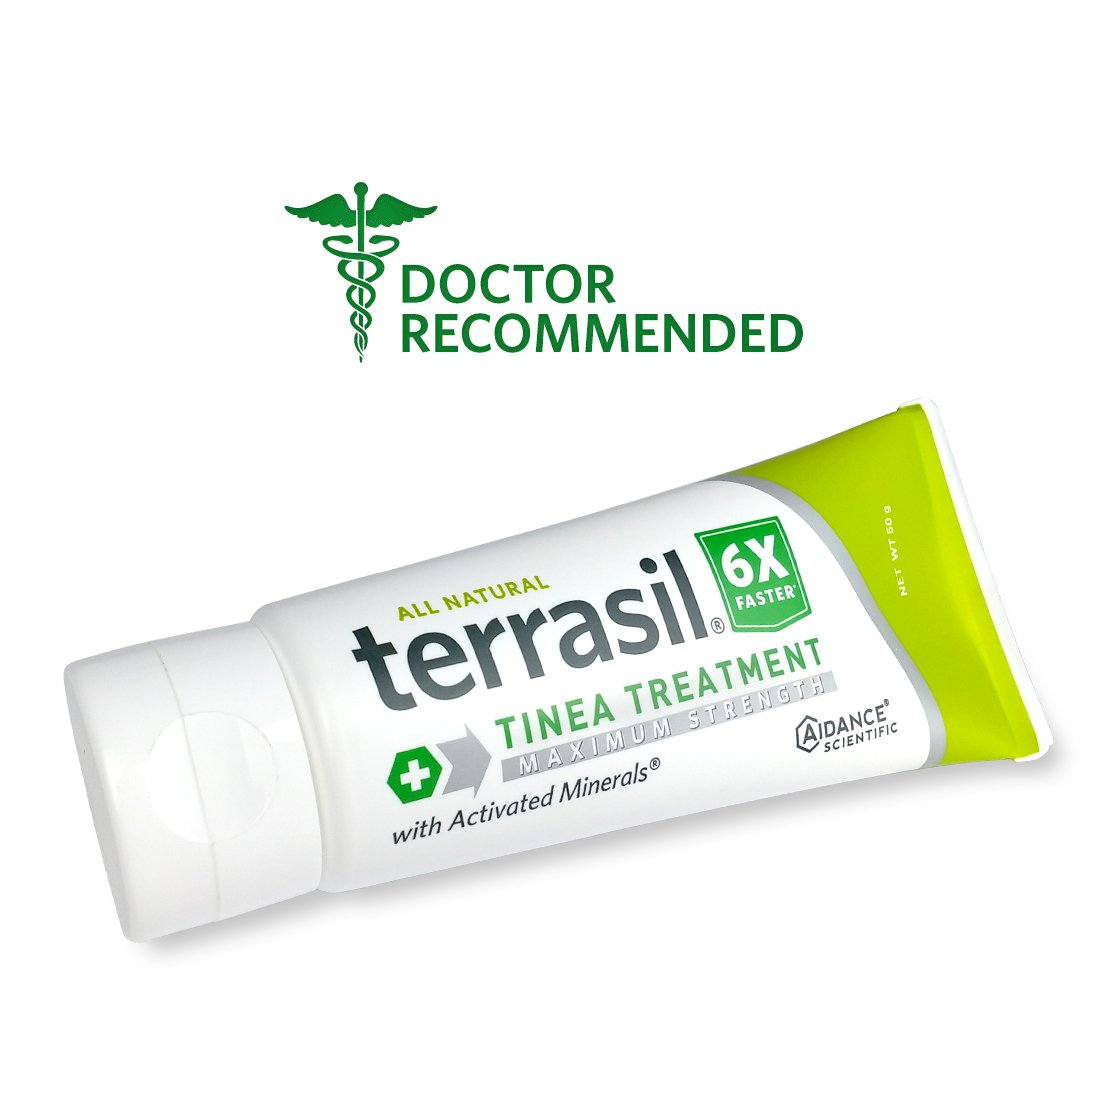 Terrasil® Tinea Treatment MAX - 6x Faster Relief, 100% Guaranteed, Patented All Natural Therapeutic Anti-fungal Ointment for Tinea Relieves itching, discoloration, irritation, discomfort - 50g by Aidance Skincare & Topical Solutions